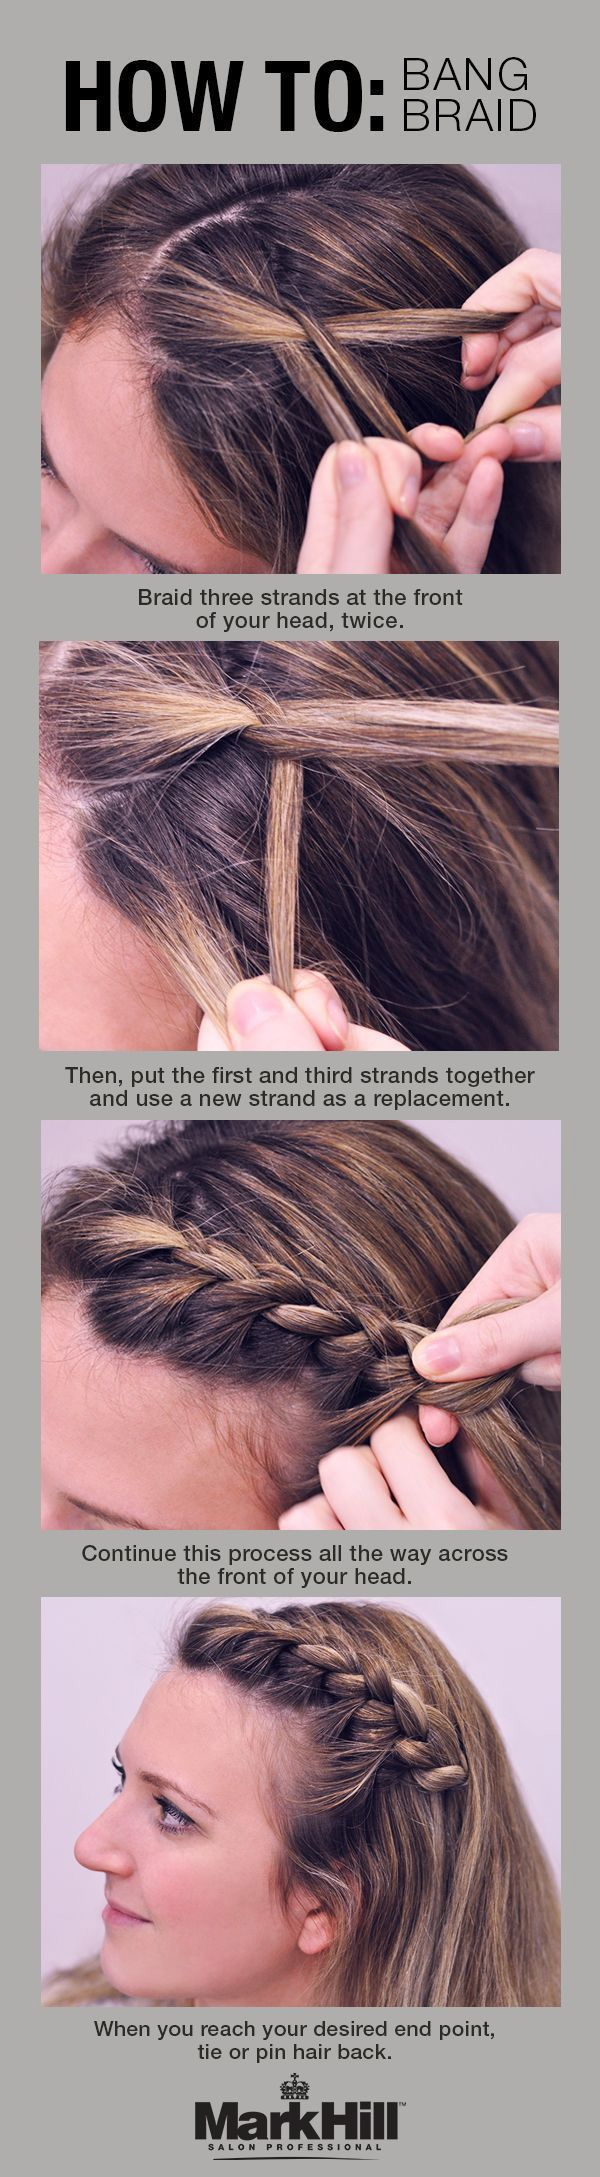 10 easy hairstyles for bangs to get them out of your face | easy